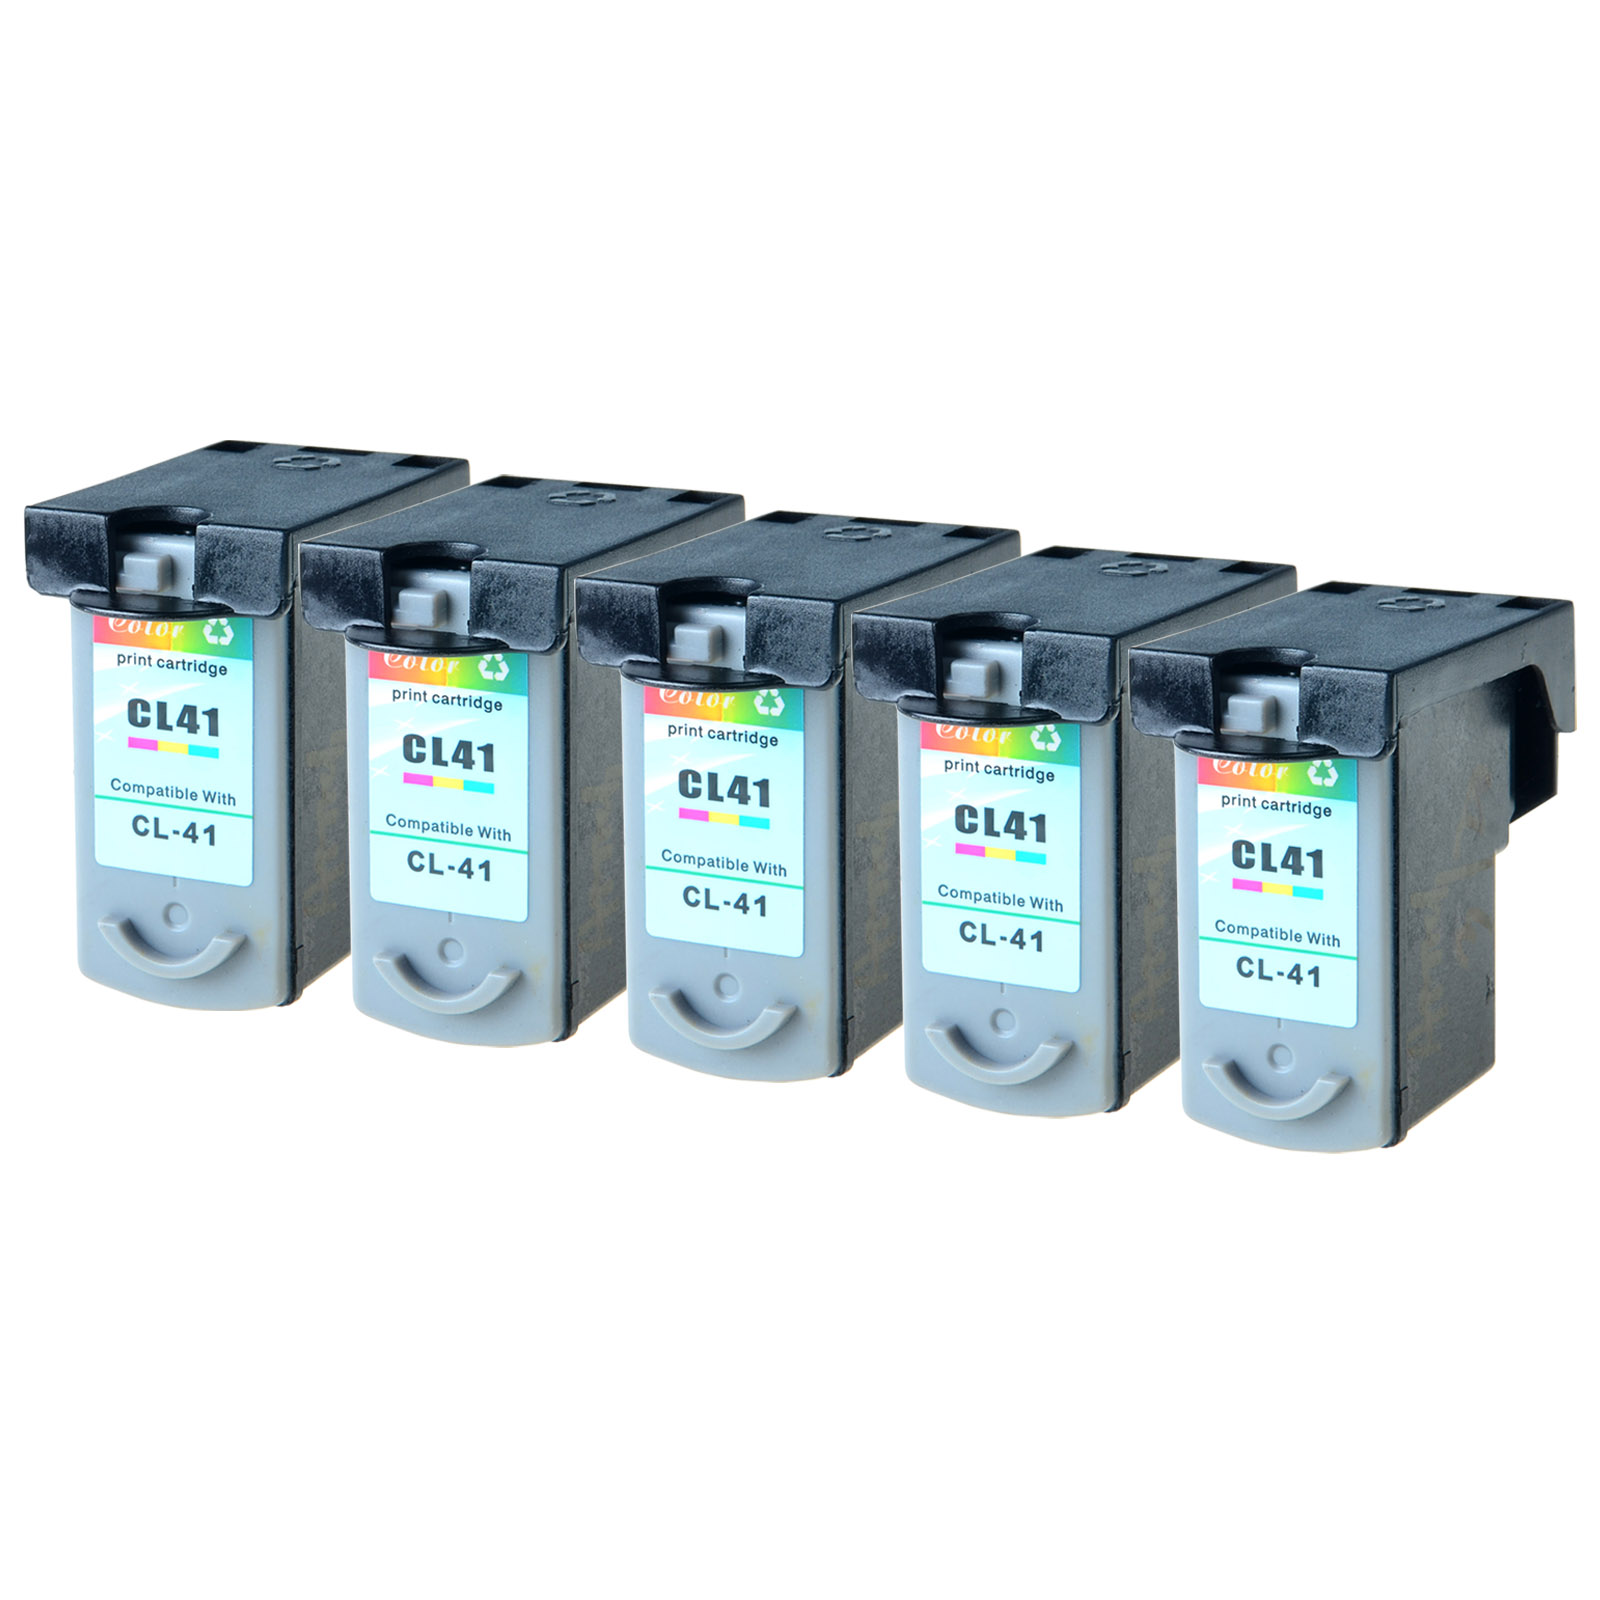 3 PK CL-41 CL41 Color Ink Cartridge for Canon PIXMA MP140 MP160 iP1600 Printers